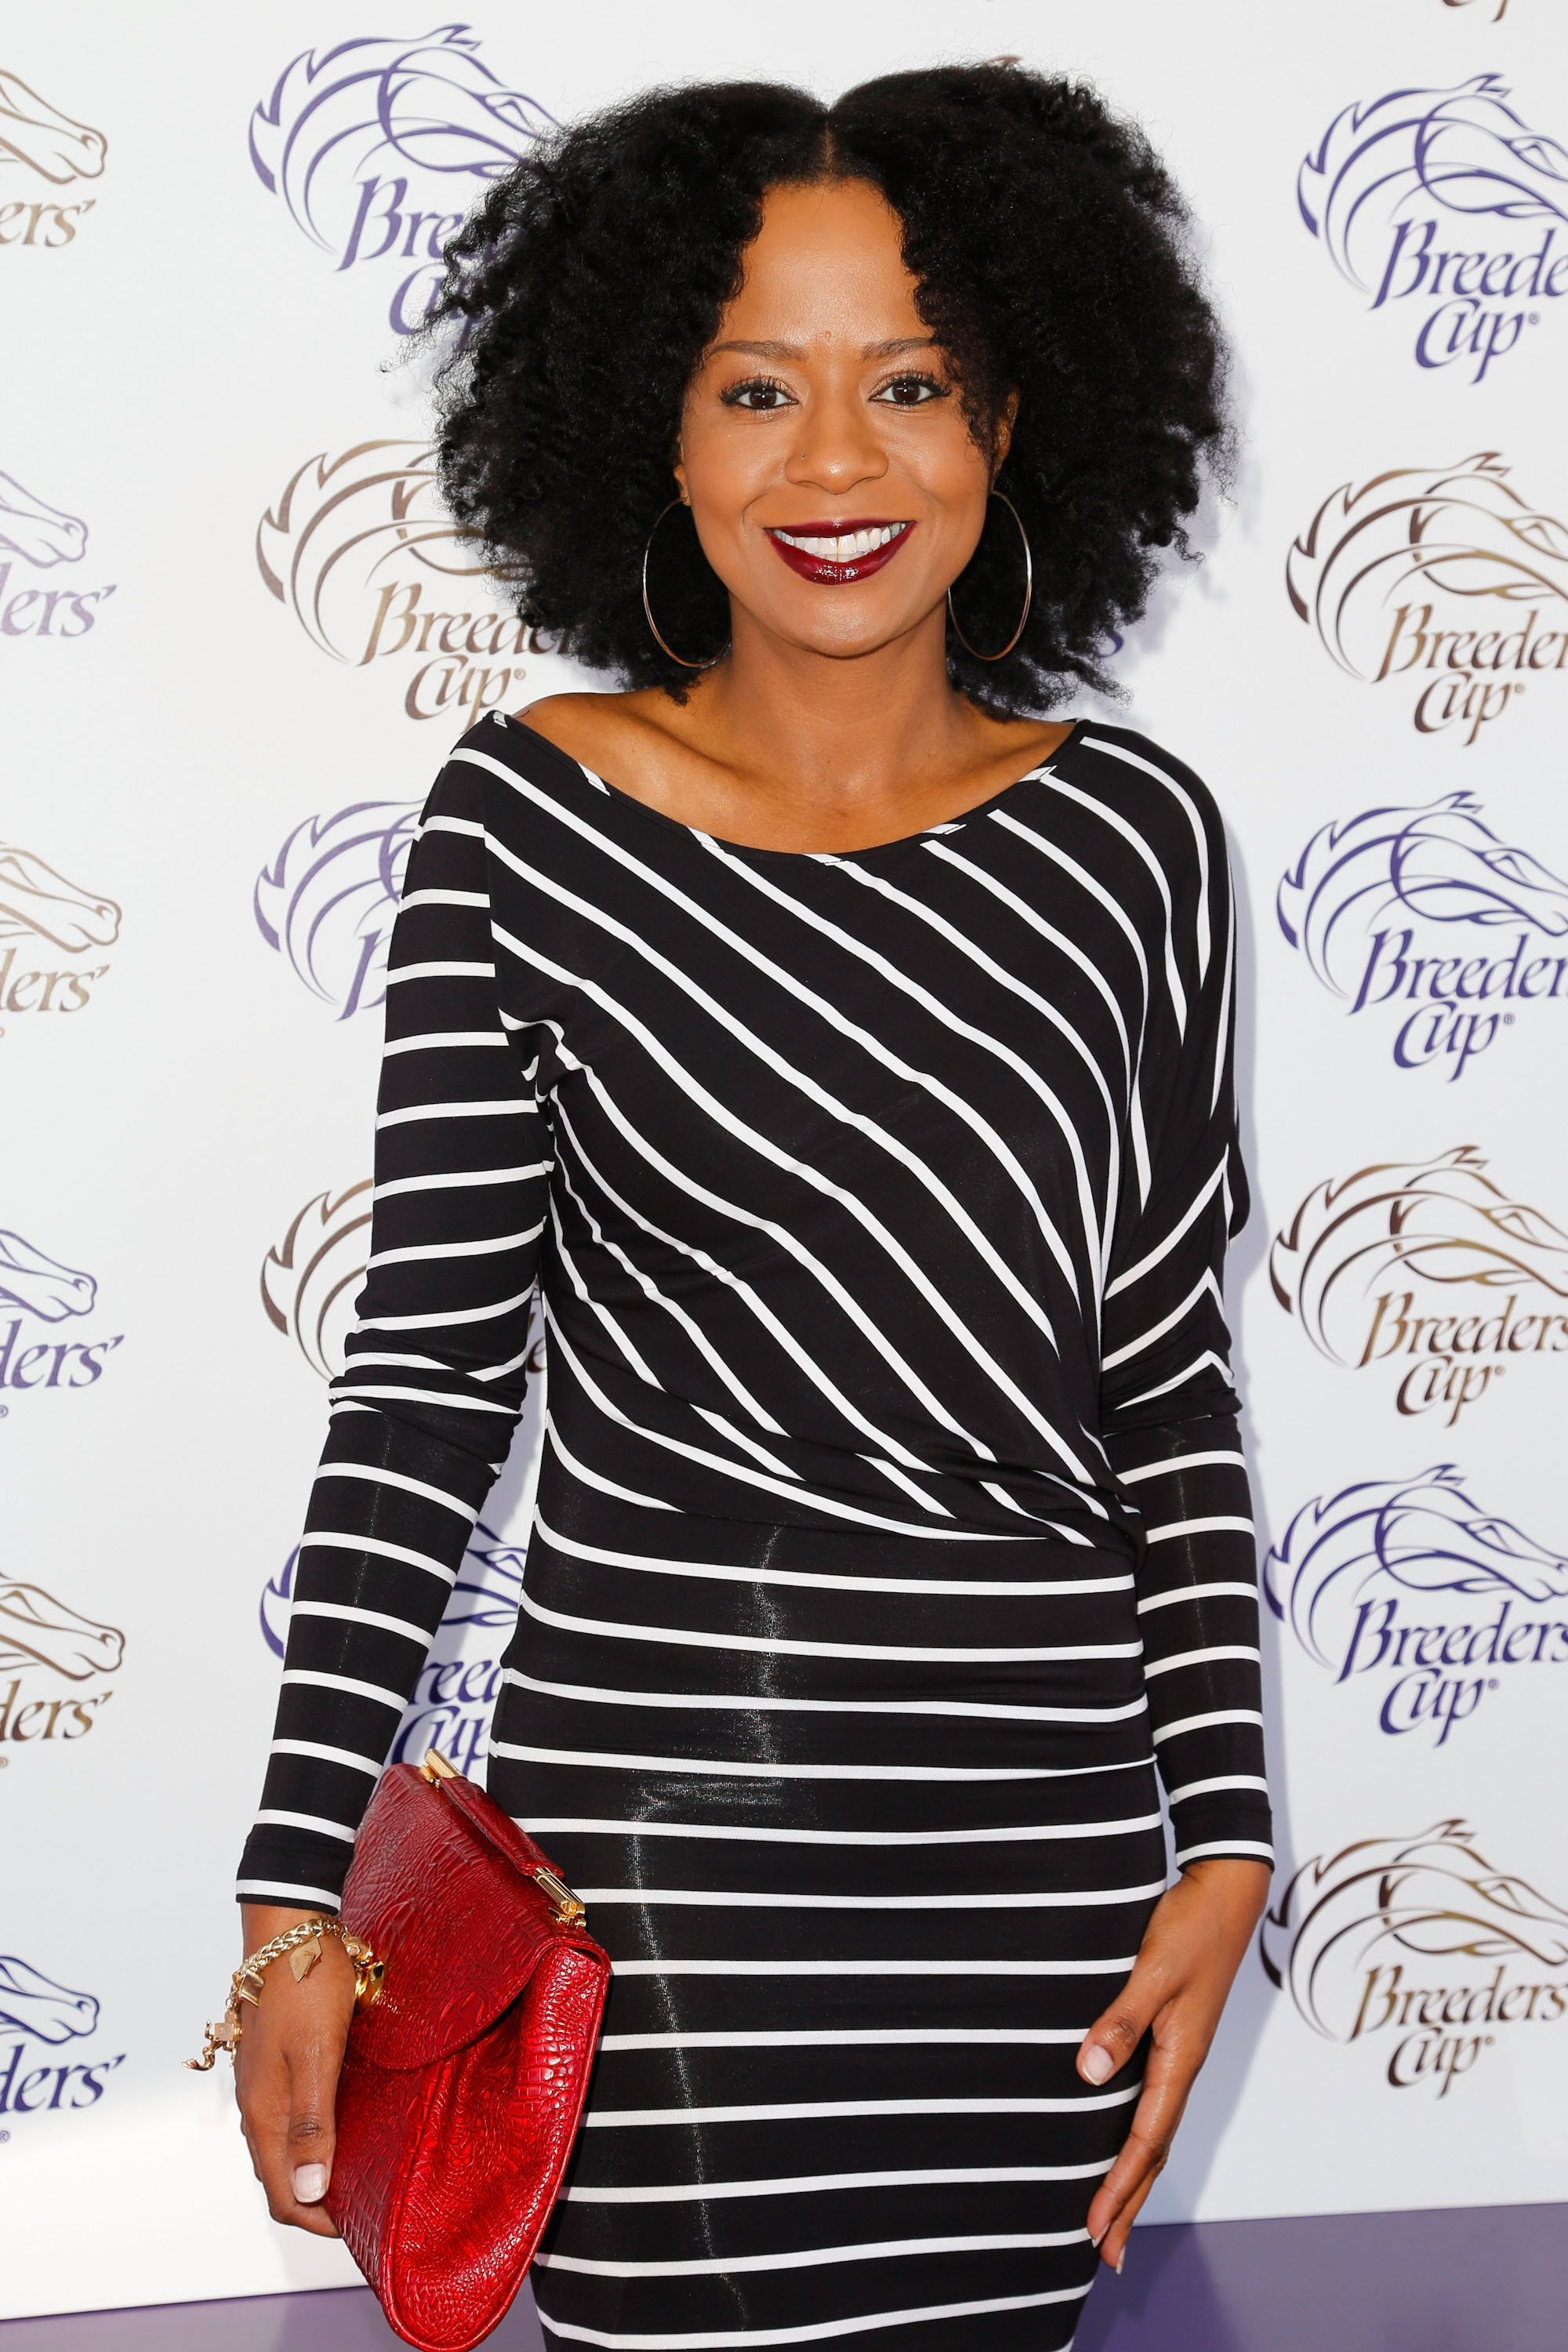 Tempestt Bledsoe at The Breeders' Cup World Championships on November 3, 2012 in Arcadia, California   Photo: Getty Images